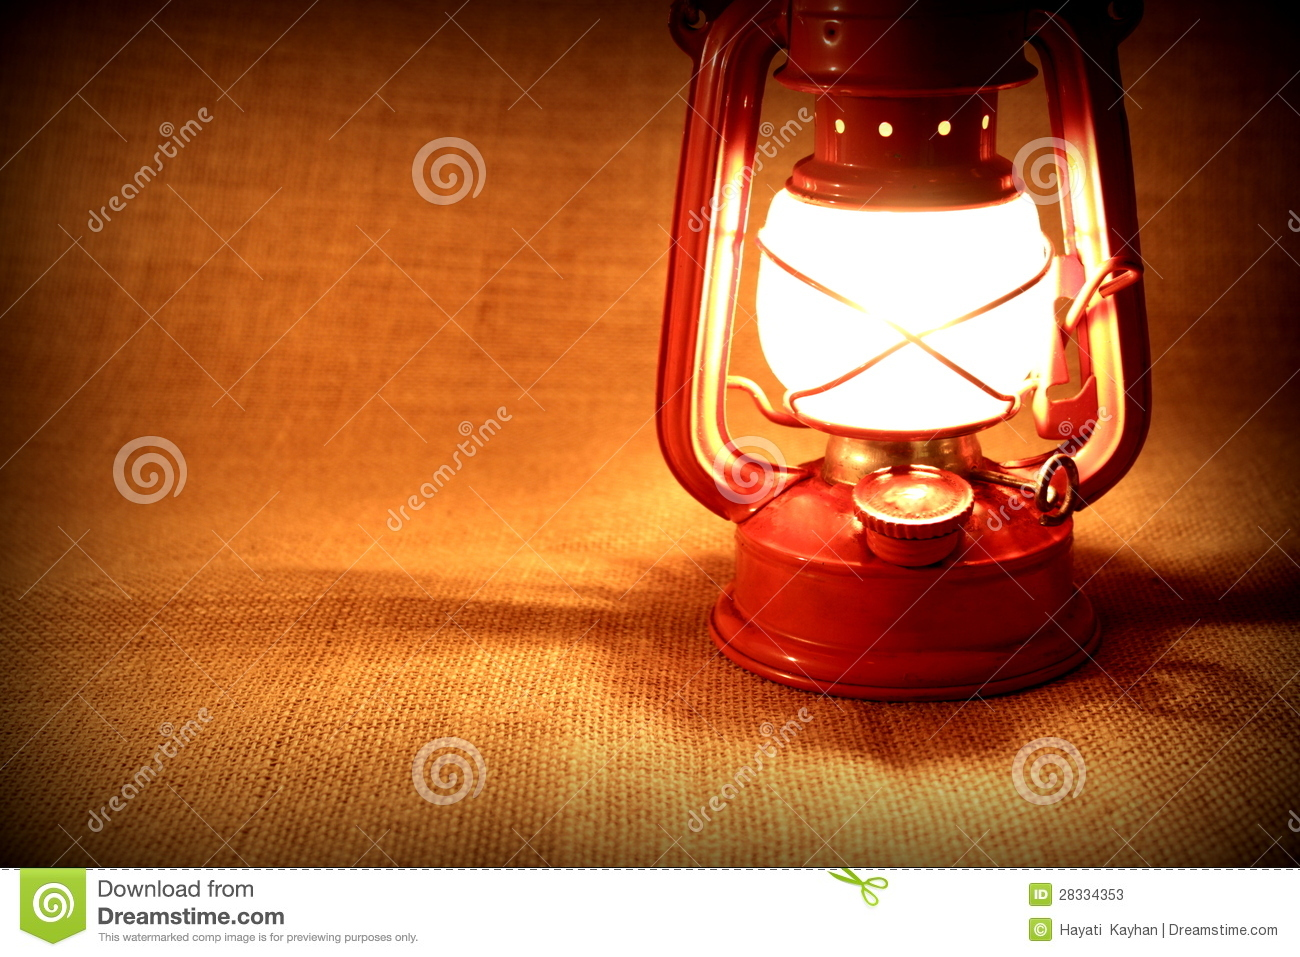 Burning Oil Lamp On Burlap. Vintage Concept Stock Photos - Image ...